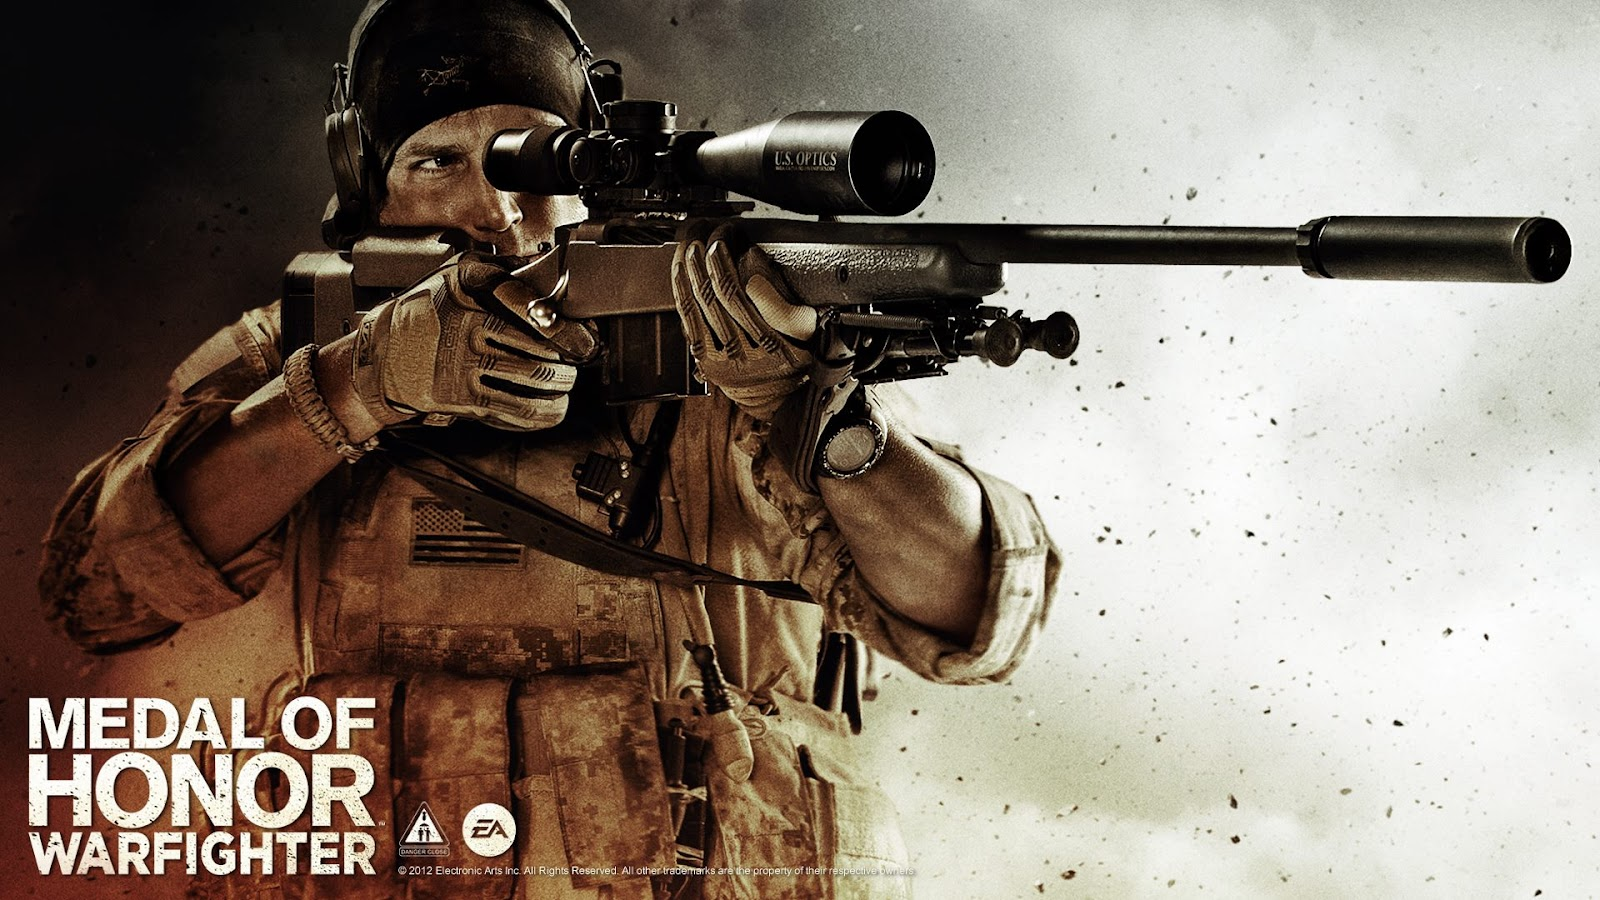 http://4.bp.blogspot.com/-GRMPHyeZIBs/UWGvOFuUuLI/AAAAAAAAP24/4p27skbB47w/s1600/Medal+of+Honor+-+Warfighter+Wallpapers+%25287%2529.jpg